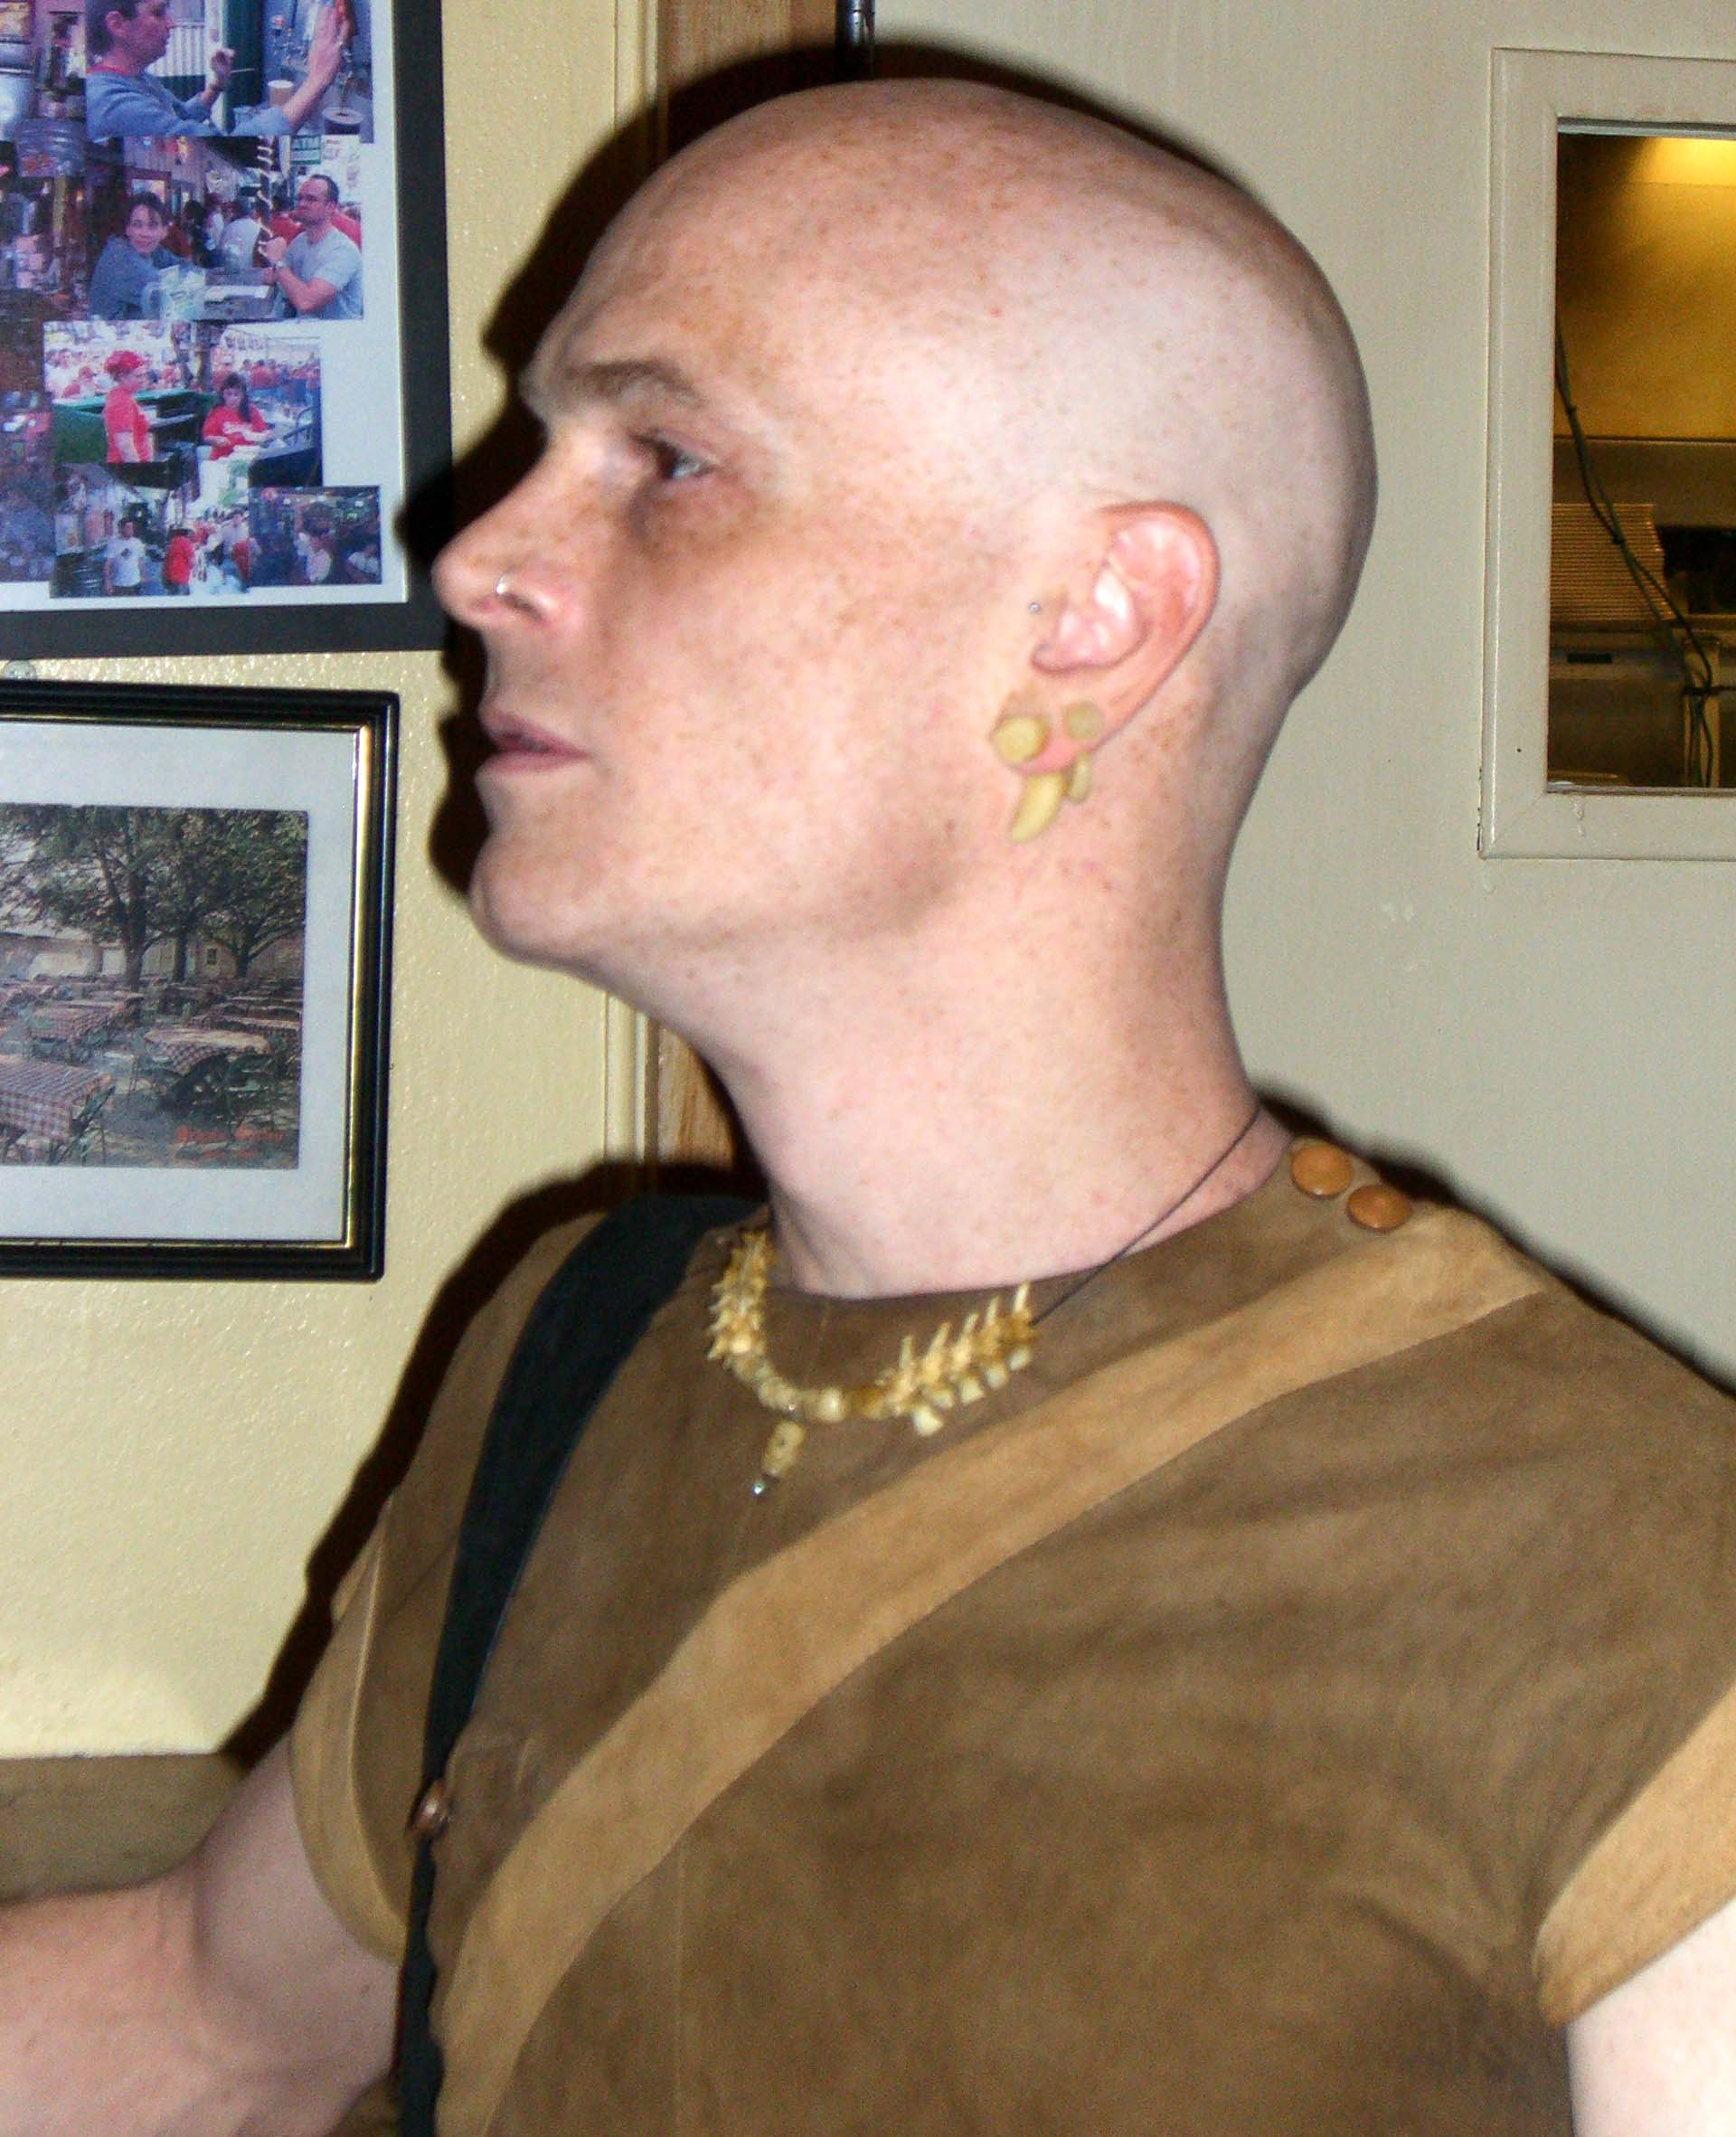 Tooth earrings, seen at the steampunk party at the SXSW 2007